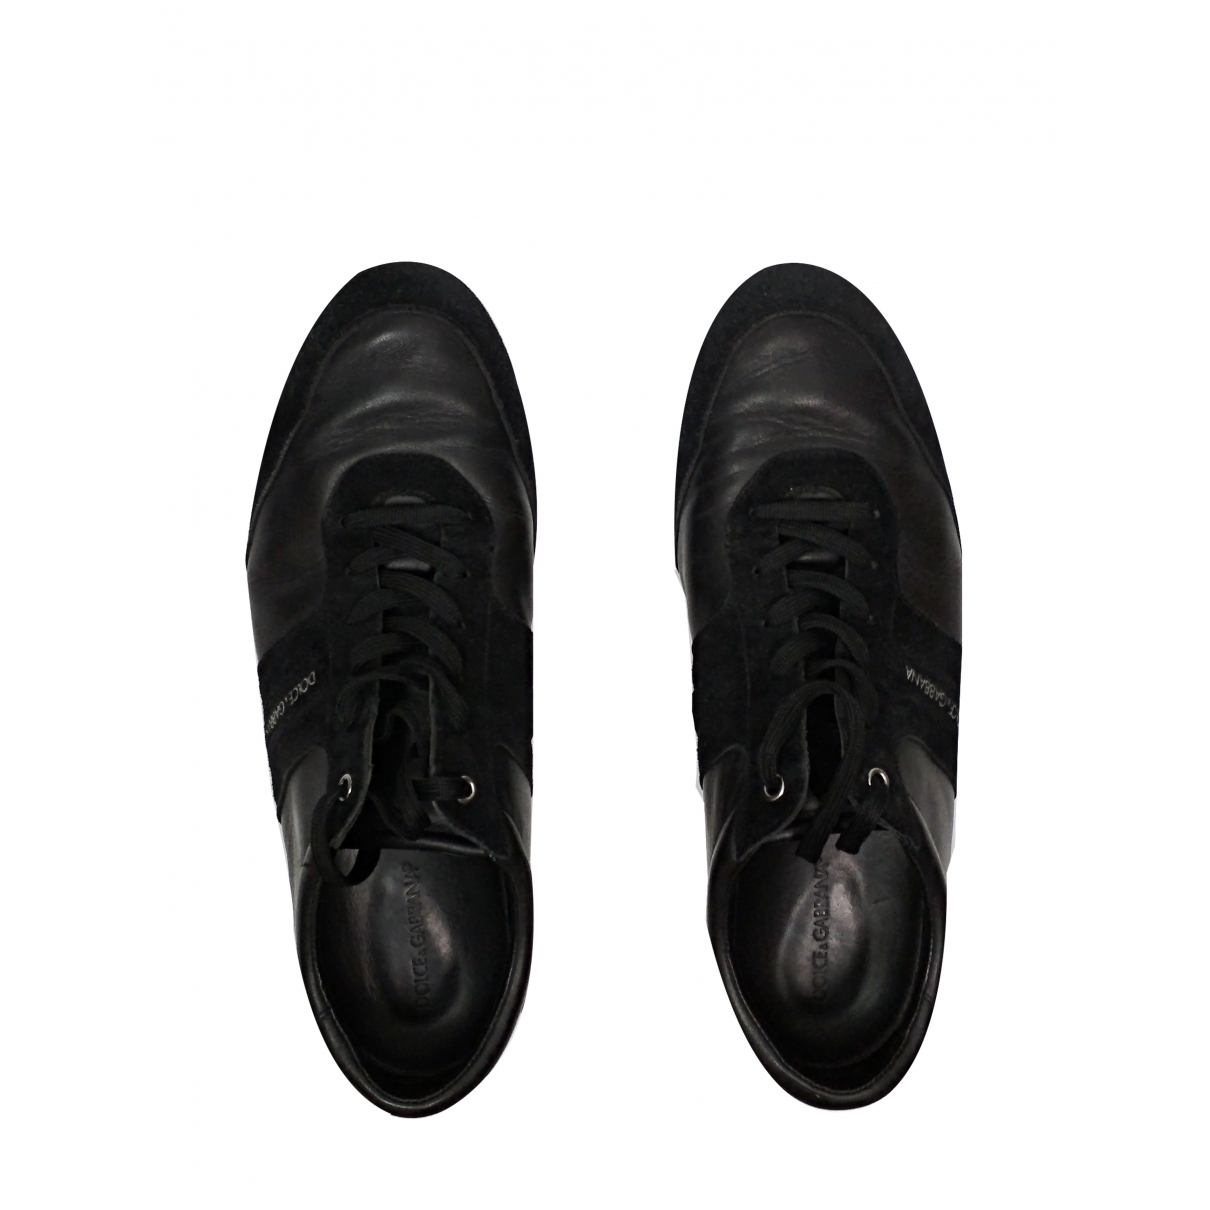 Dolce & Gabbana \N Black Leather Trainers for Men 11 US